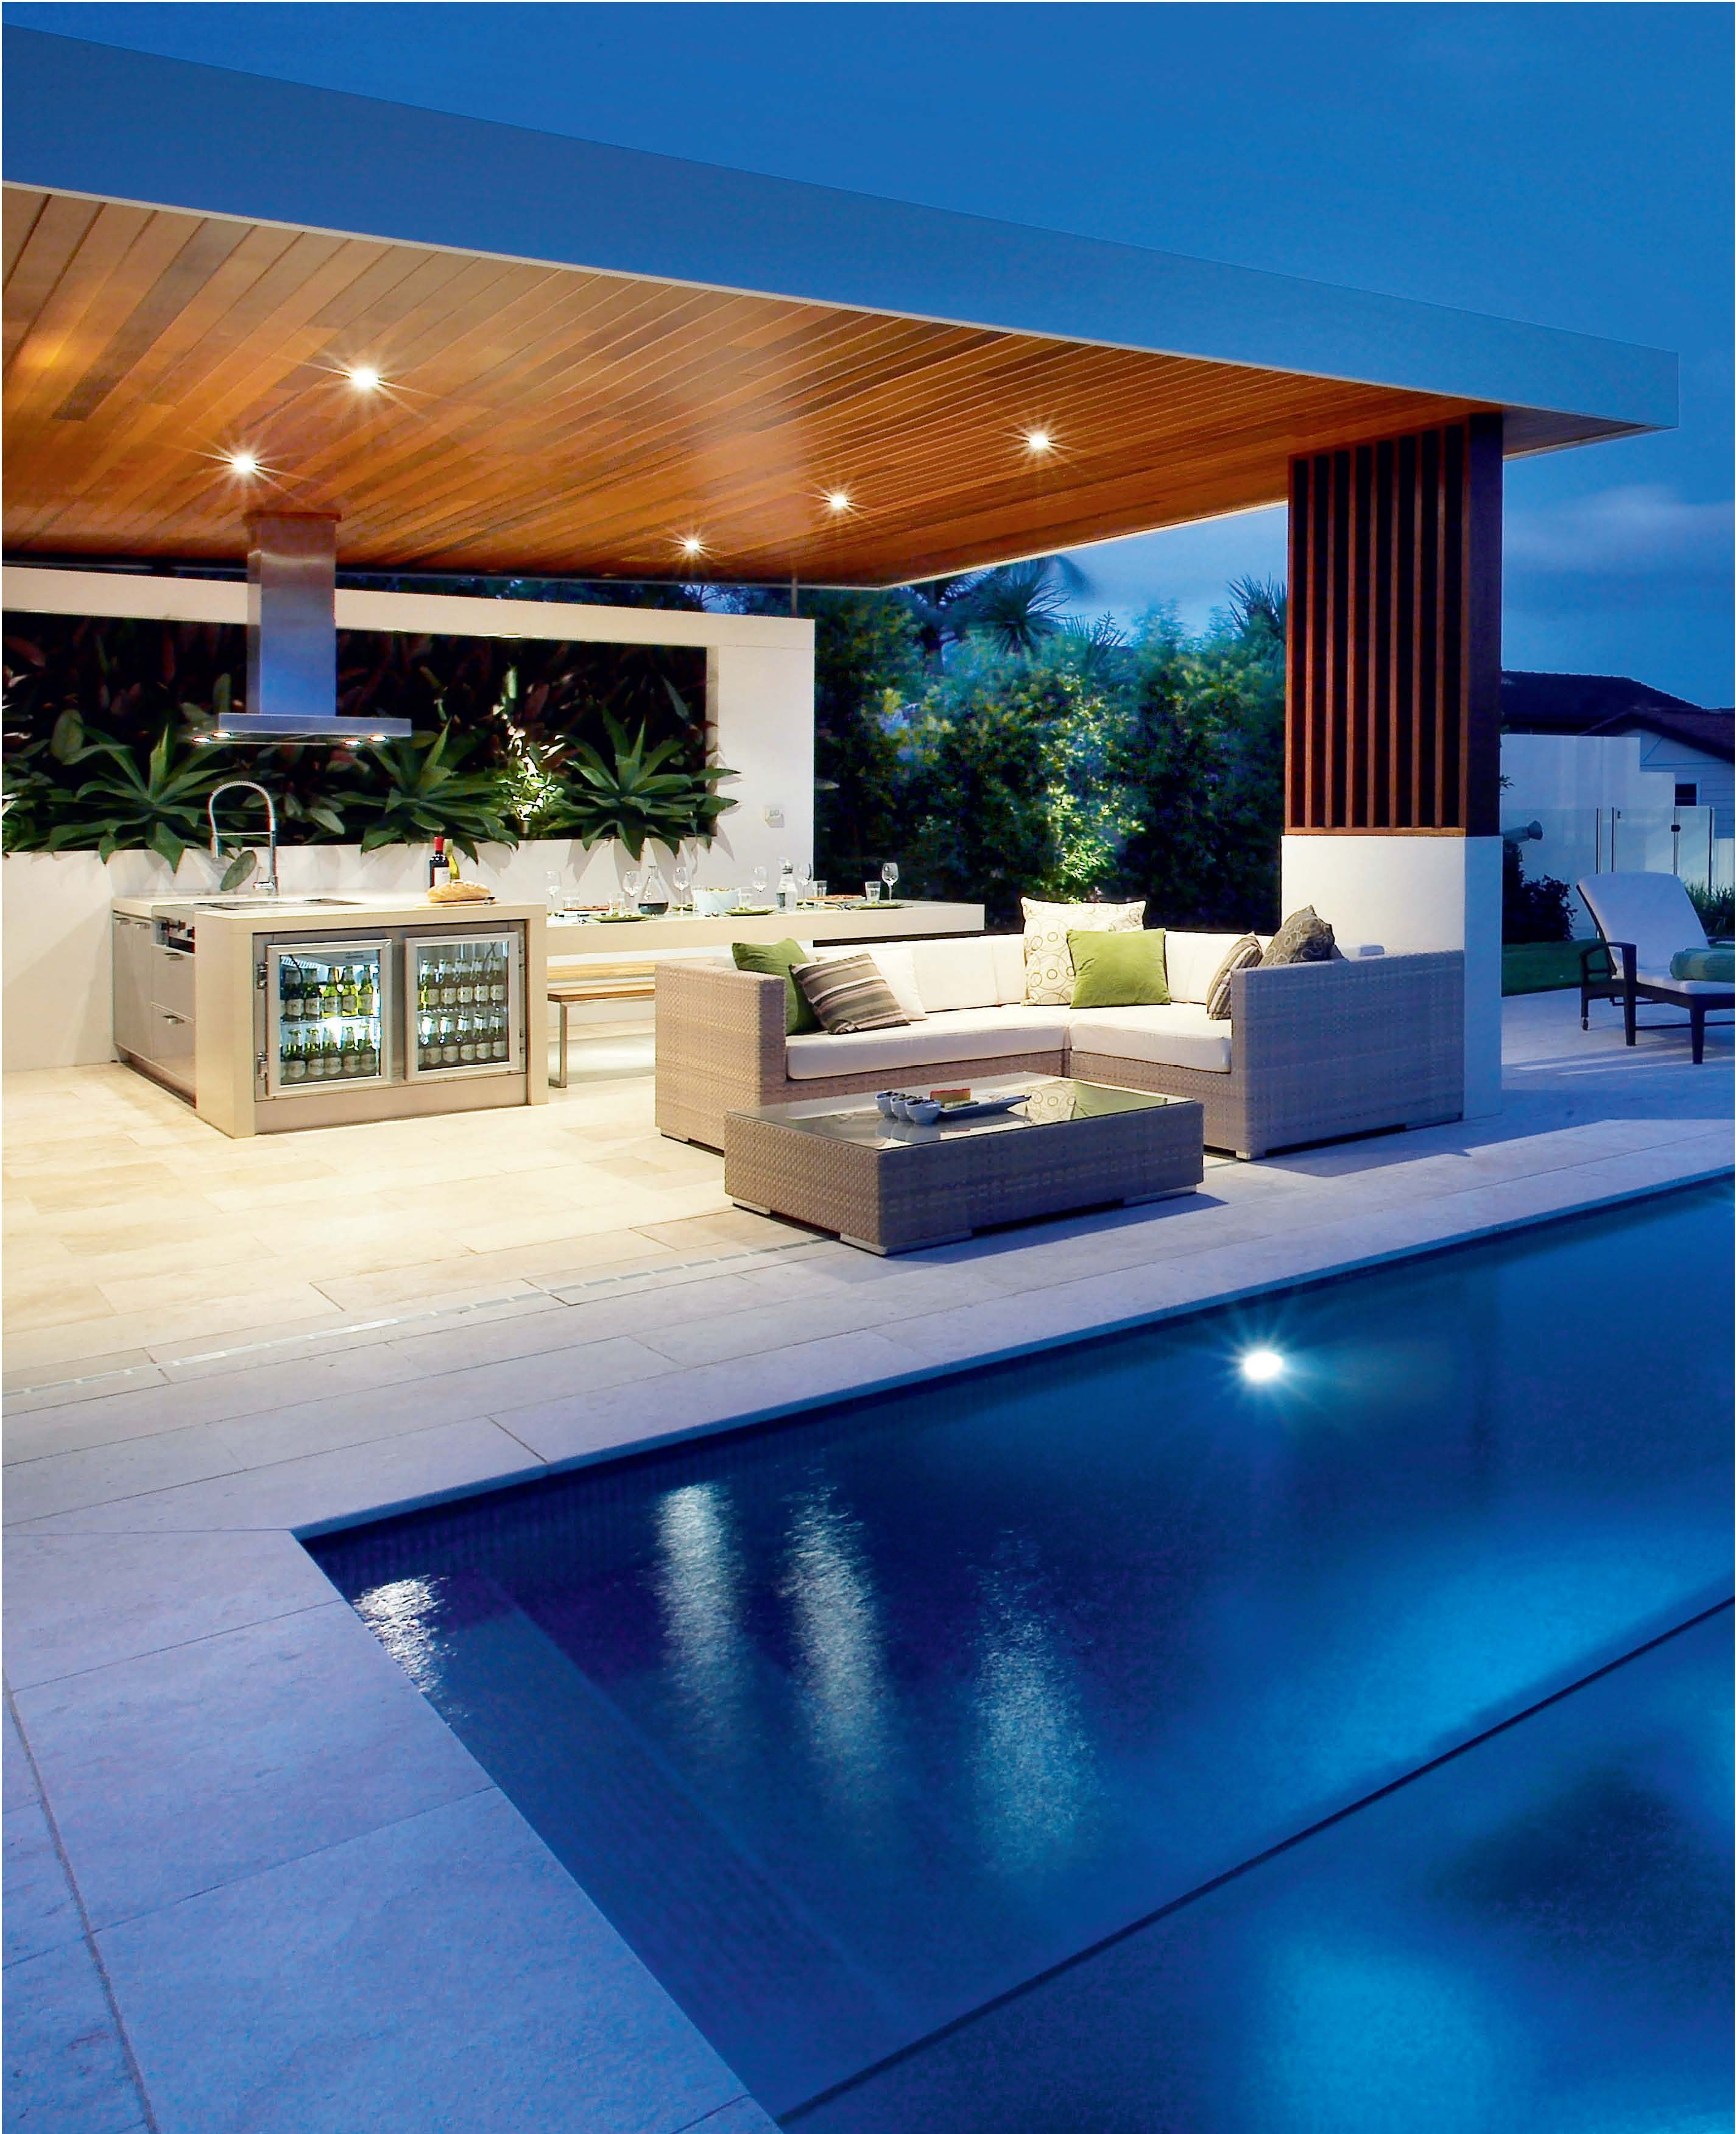 Sydney-Living-Pools-Outdoor-Design-No.2.